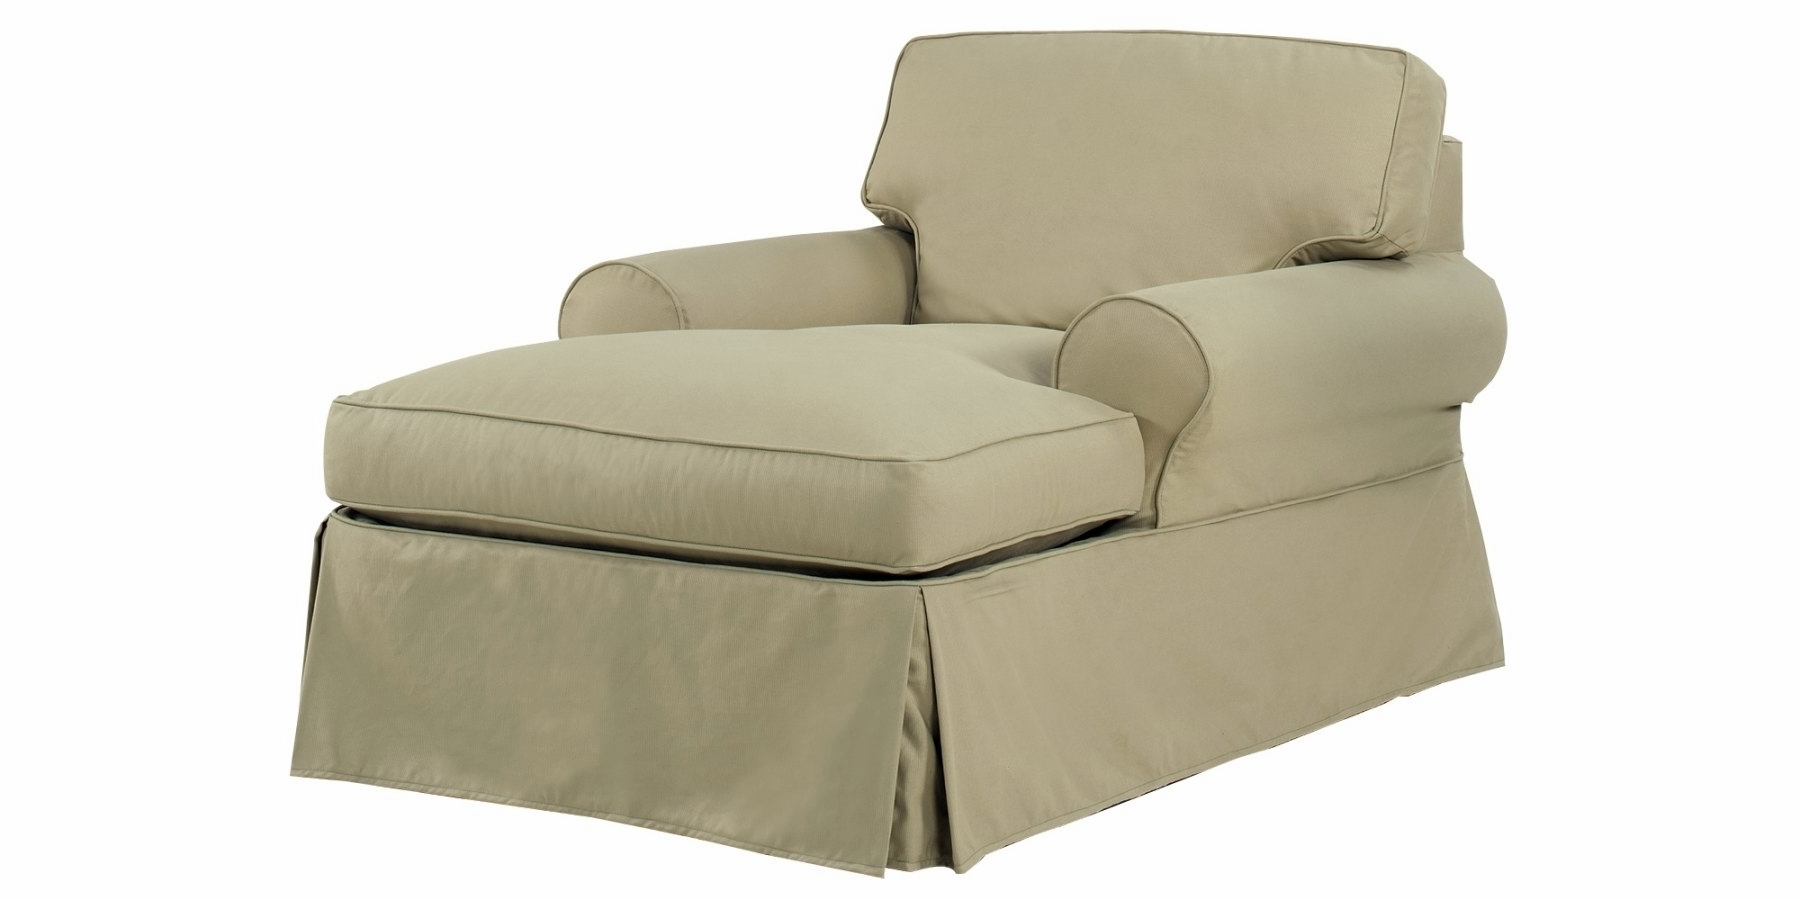 chairs large slipcover of couch sofa size lounge covers with for recliners chaise slipcovers indoor